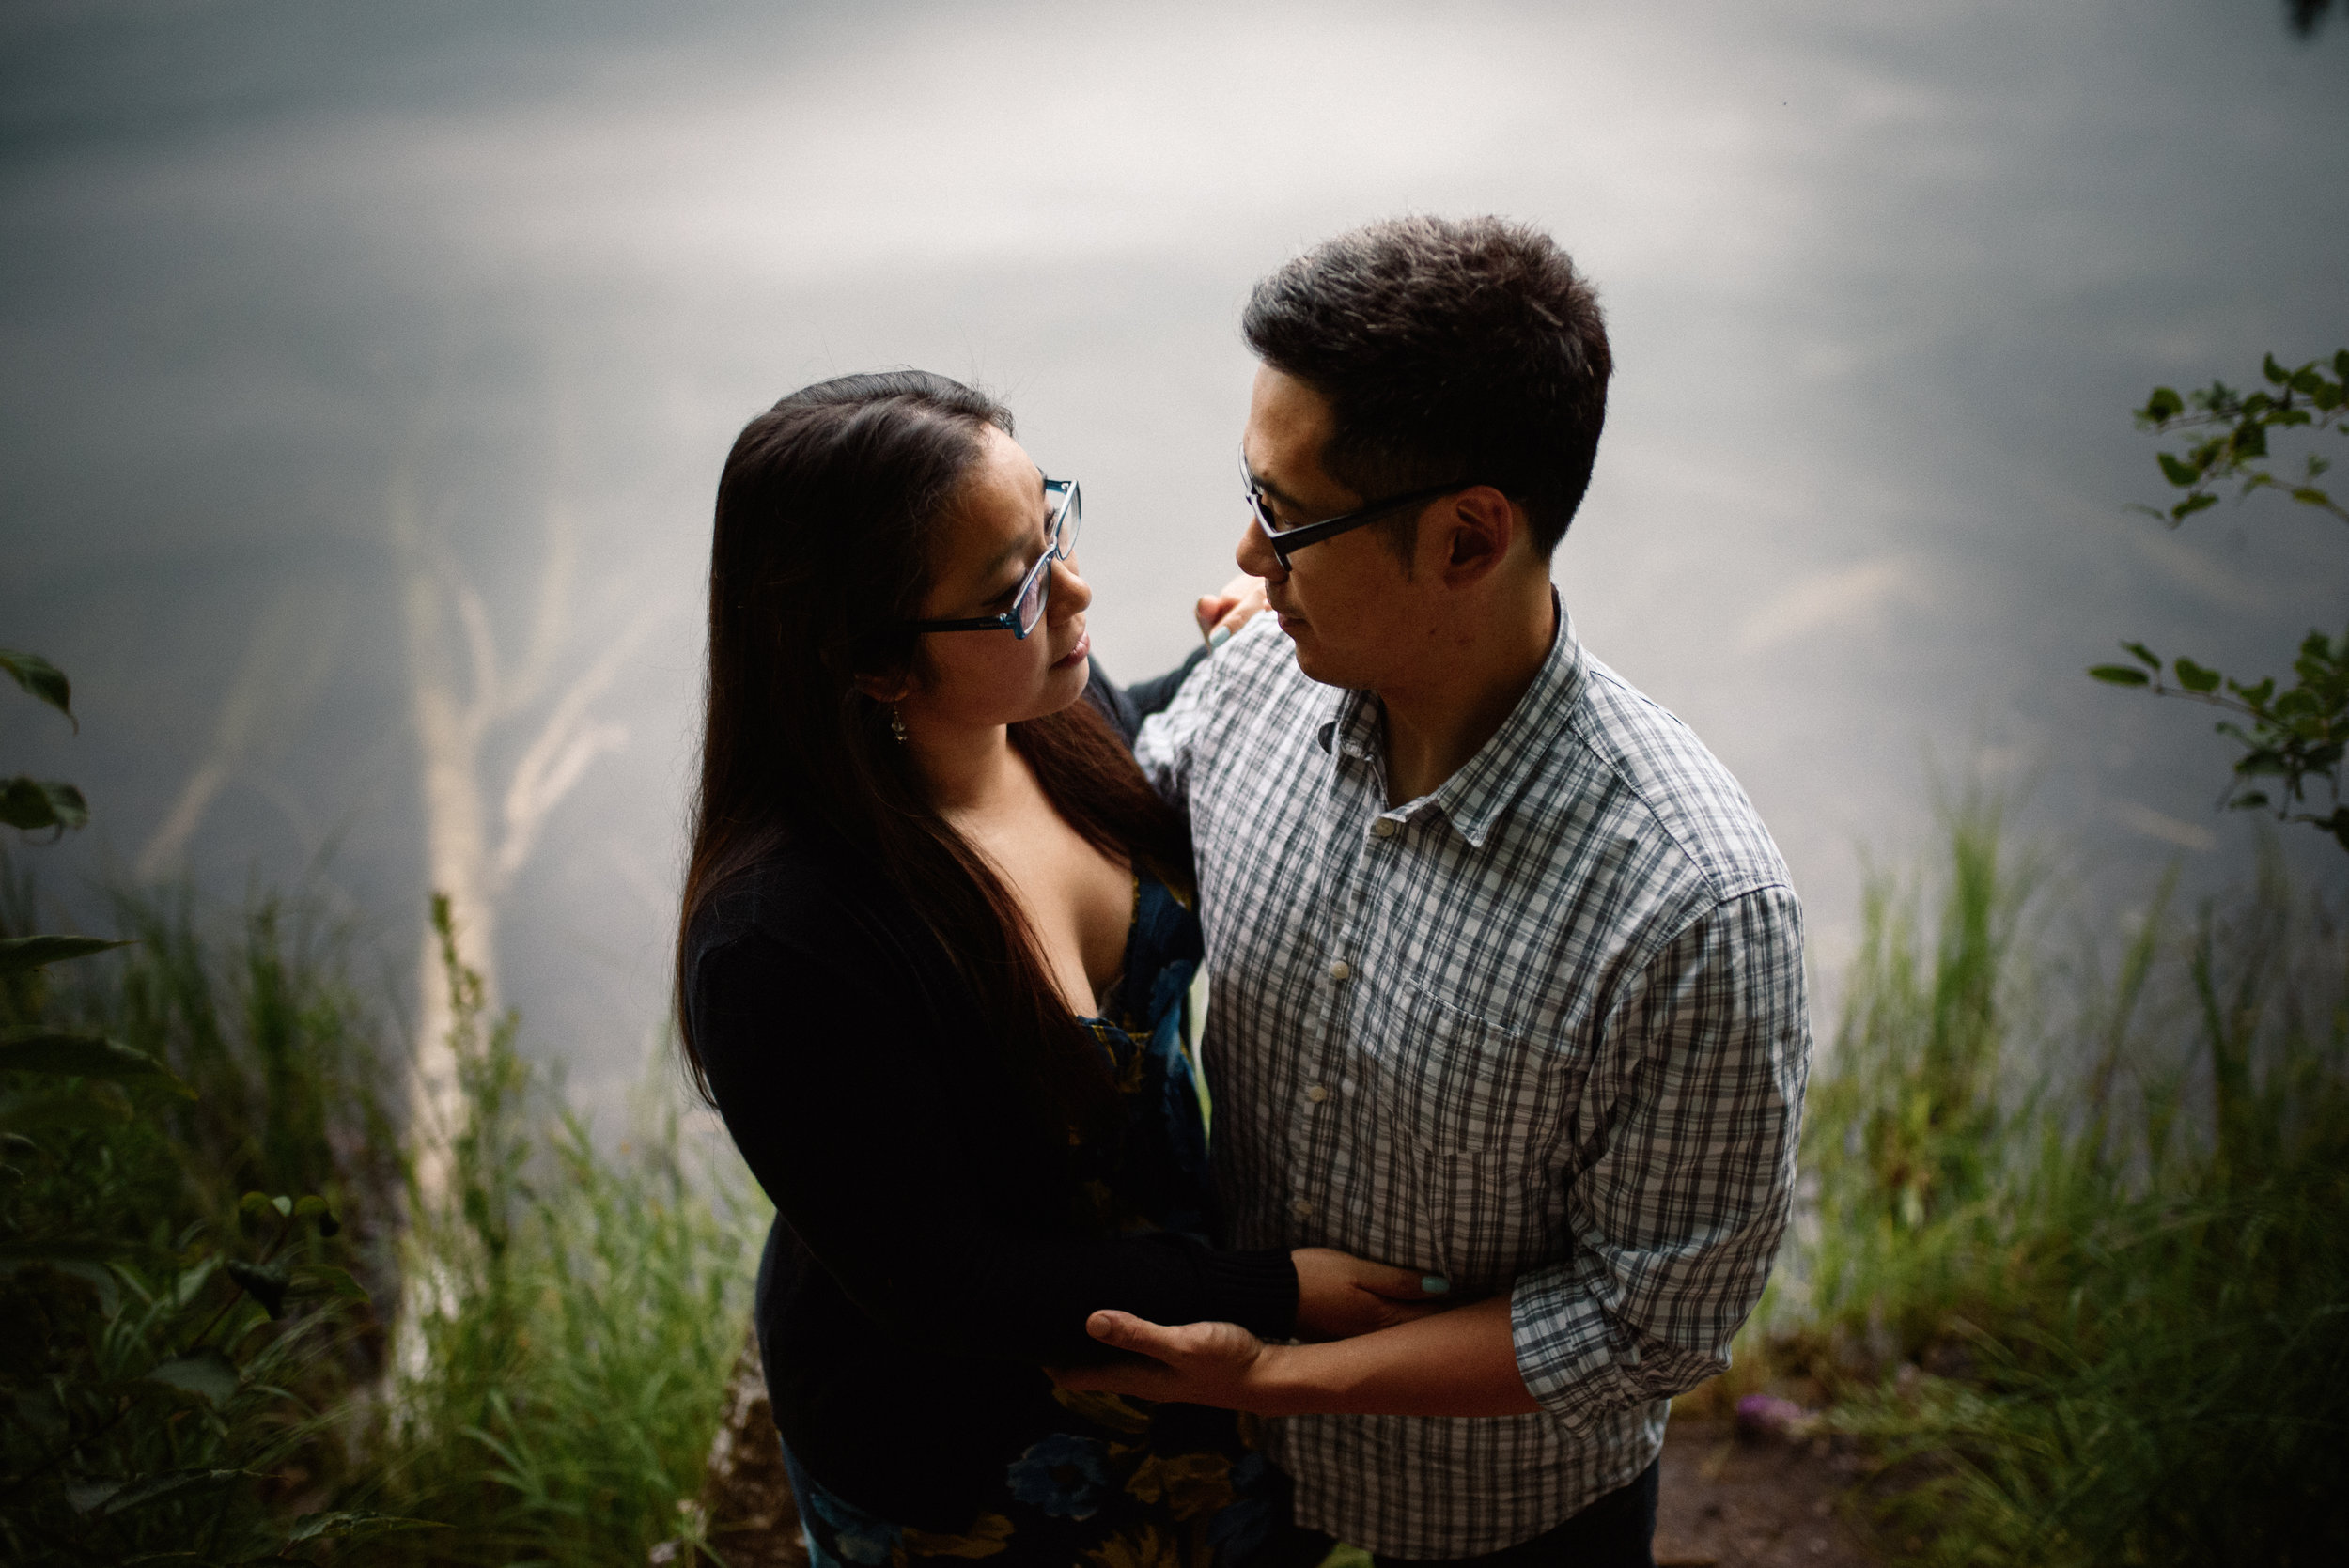 Mocha Tree Studios Ottawa Wedding and Engagement Photographer and Videographer Dark Moody Intimate Authentic Modern Romantic Cinematic Best Candid Pink Lake Engagement 7